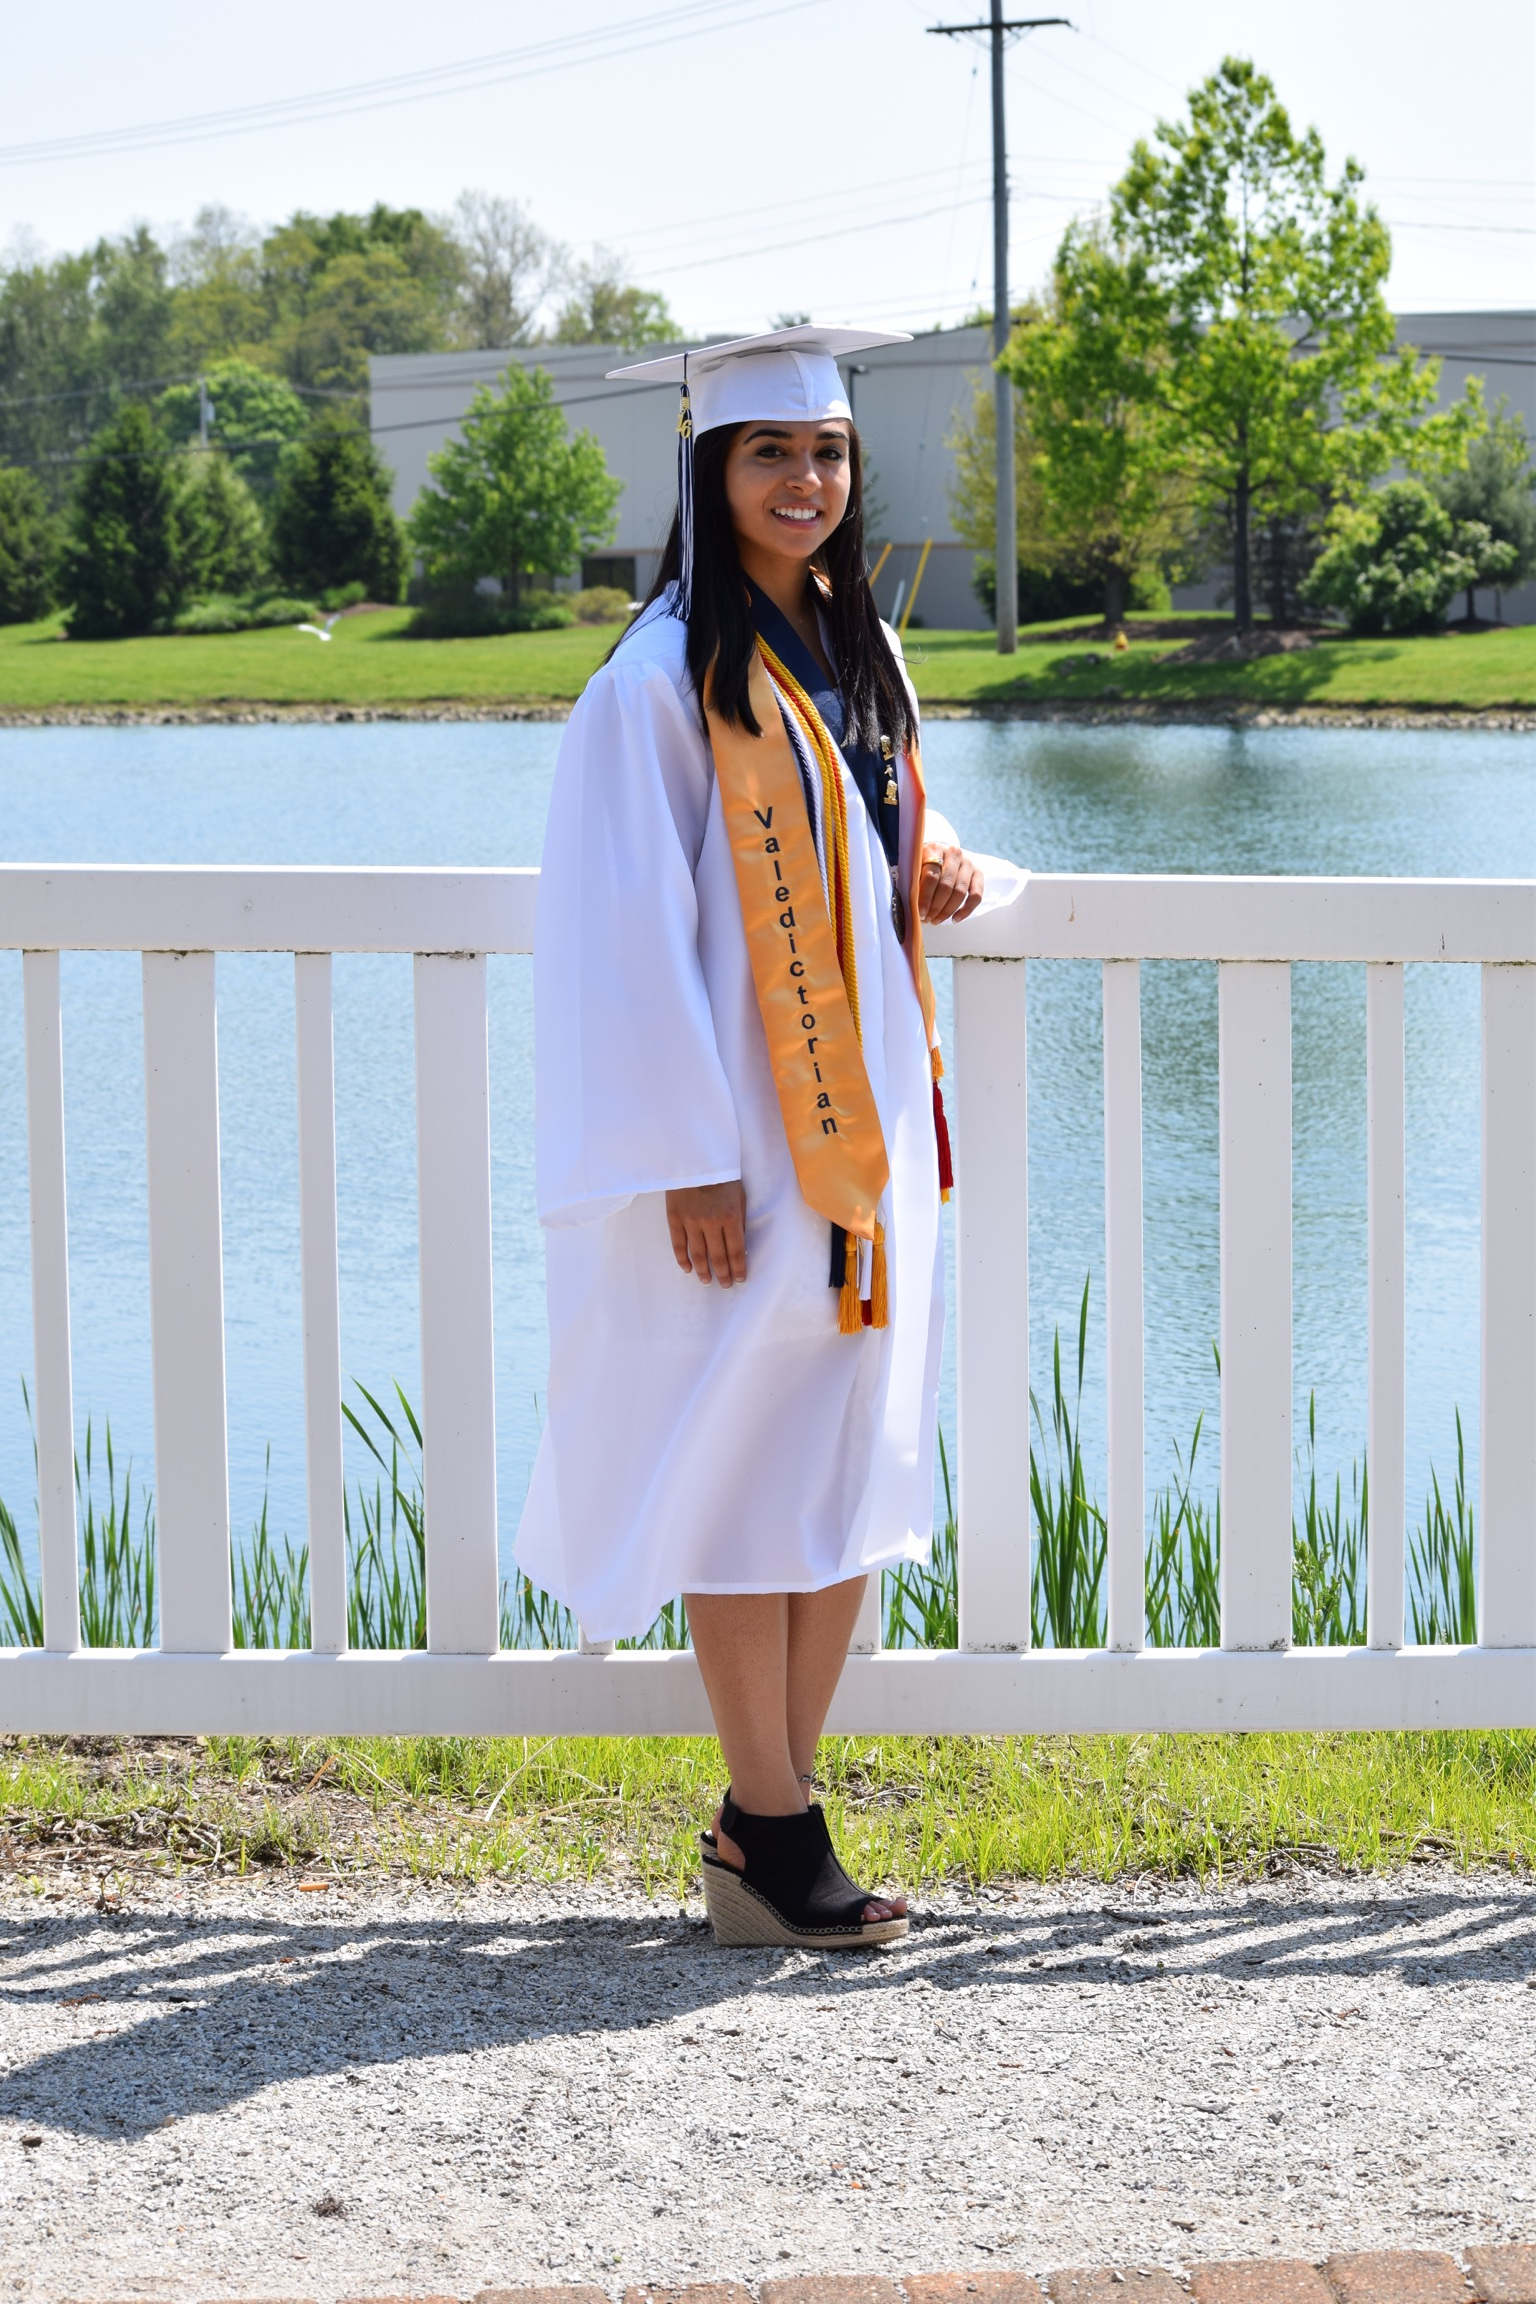 simran gill honors scholars e portfolio my is simran gill and i m a freshman at the ohio state university majoring in biochemistry and sociology i graduated from twinsburg high school